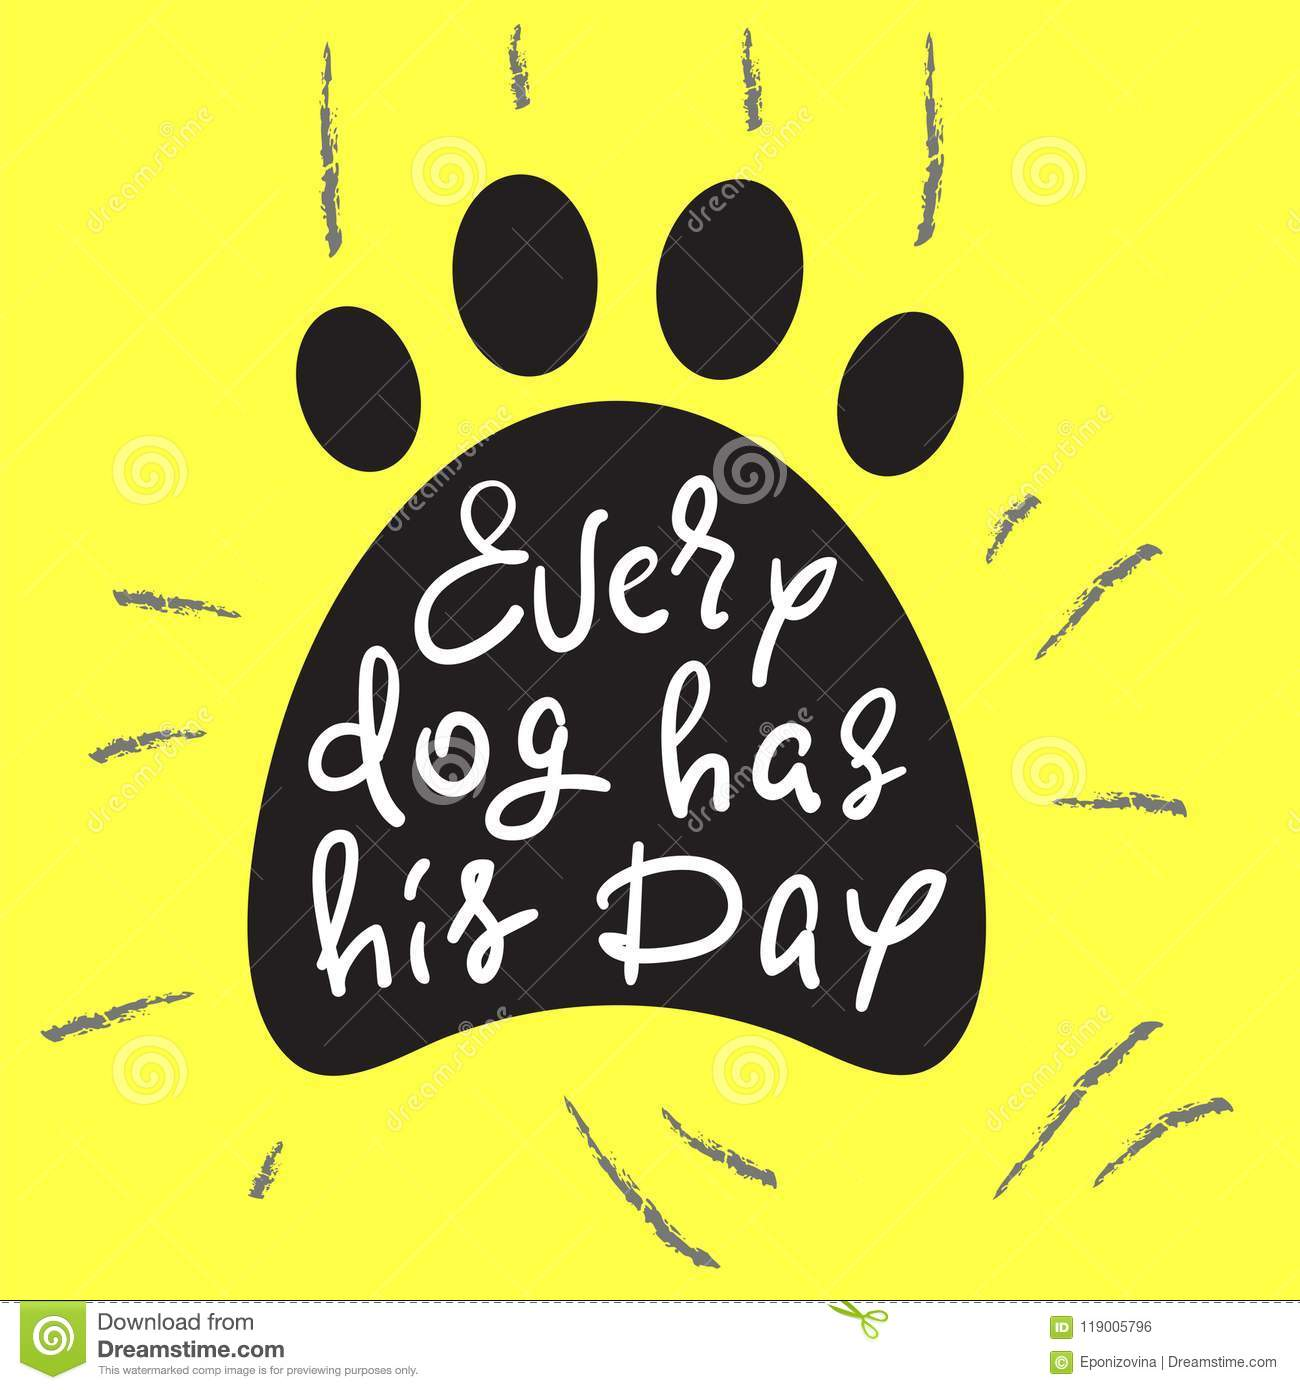 Every dog has his day handwritten funny motivational quote stock every dog has his day handwritten funny motivational quote american slang print for inspiring poster t shirt bag cups greeting postcard flyer m4hsunfo